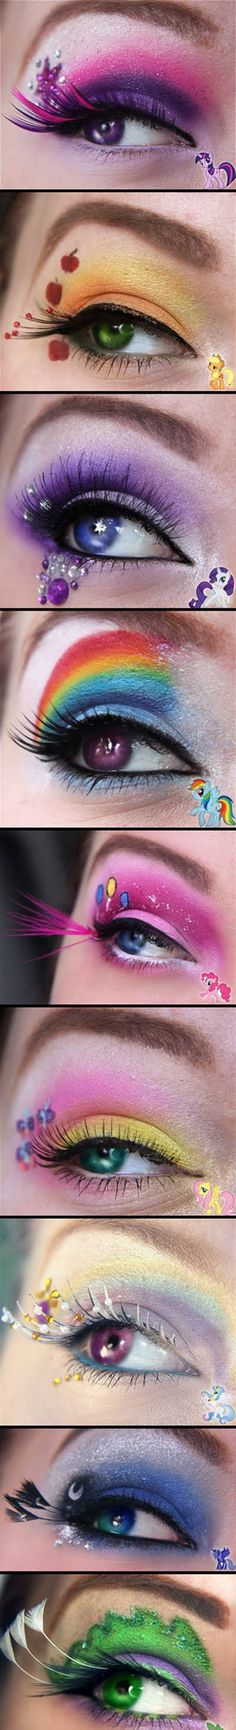 My Little Pony Friendship is Magic inspired looks.... I think I found something fun to do with Lily this summer!